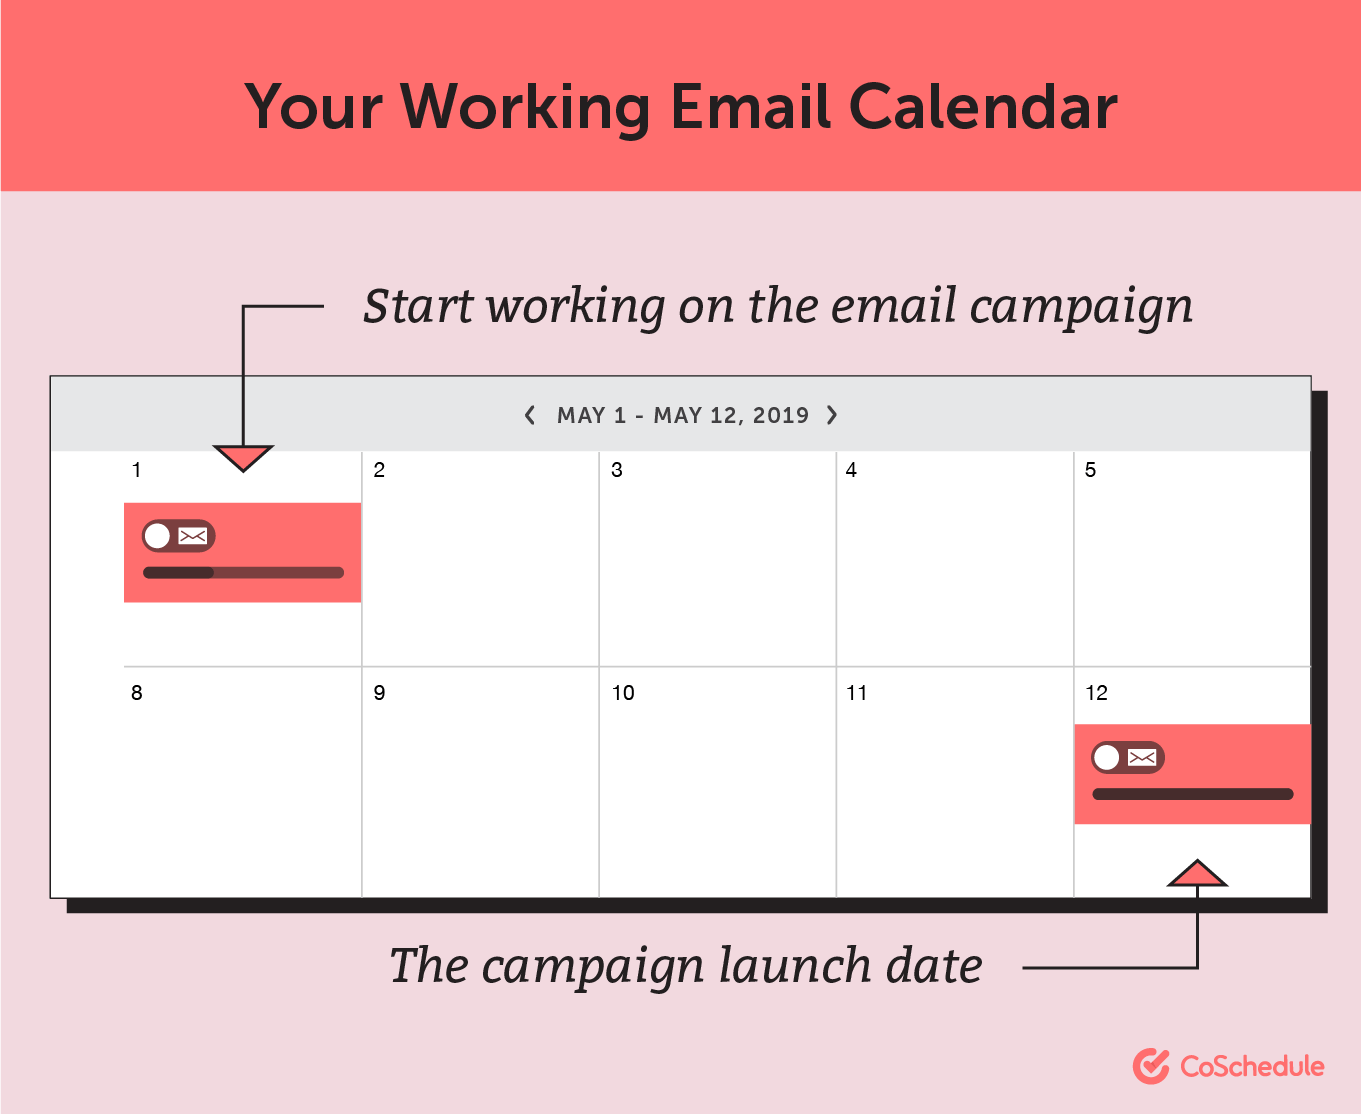 Your working email calendar